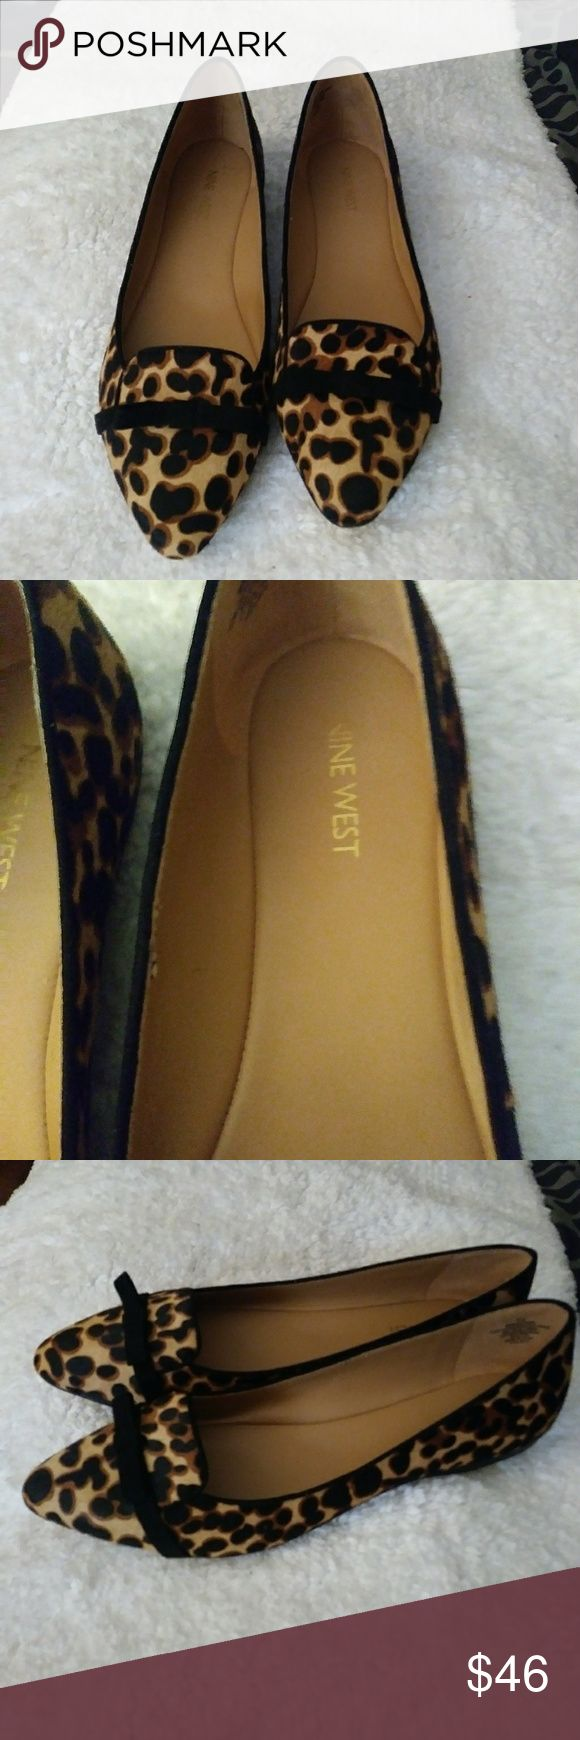 Nine West cow leather smoking flat shoes Fabulous Nine West cow leather smoking flat shoes. Leopard print Real fur! $79 Nine West Shoes Flats & Loafers